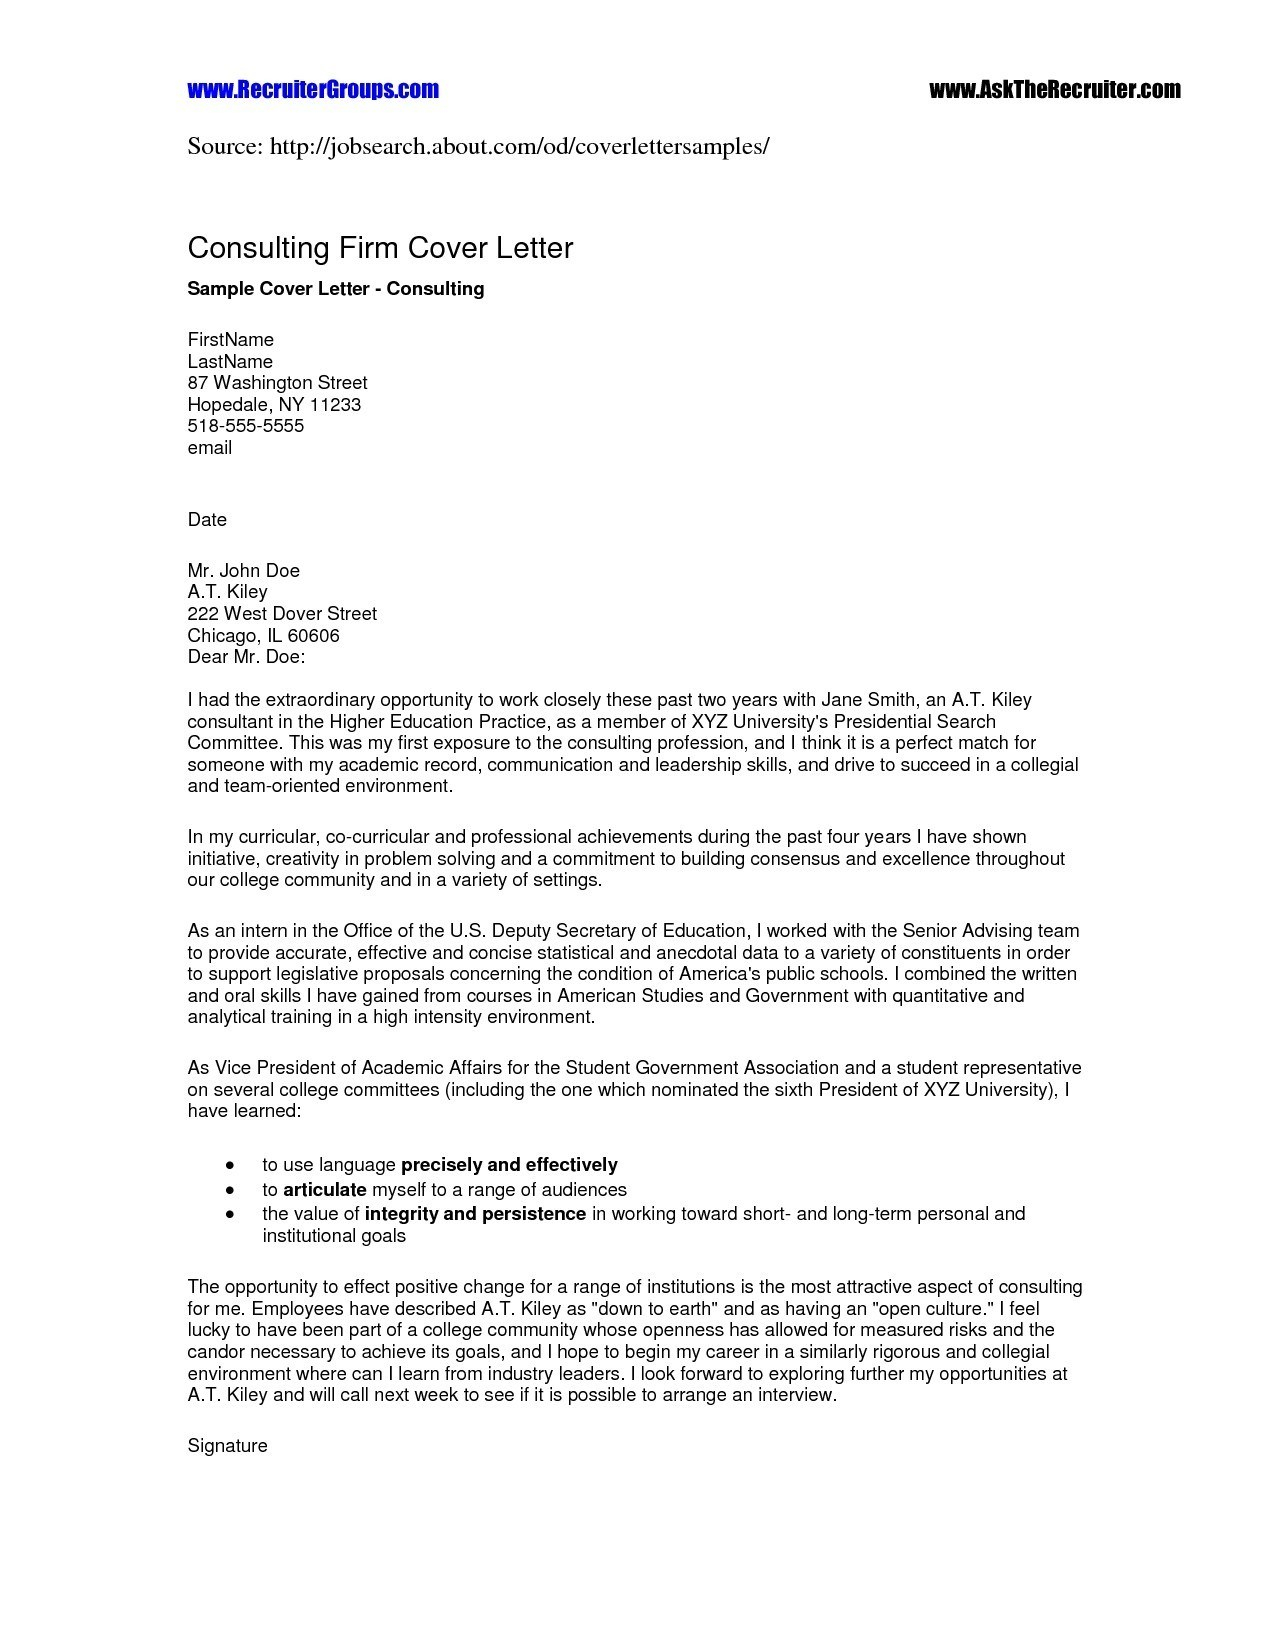 debt dispute letter template Collection-Debt Collection Dispute Letter Unique Debt Collector Cover Letter Gallery Cover Letter Sample 16-s